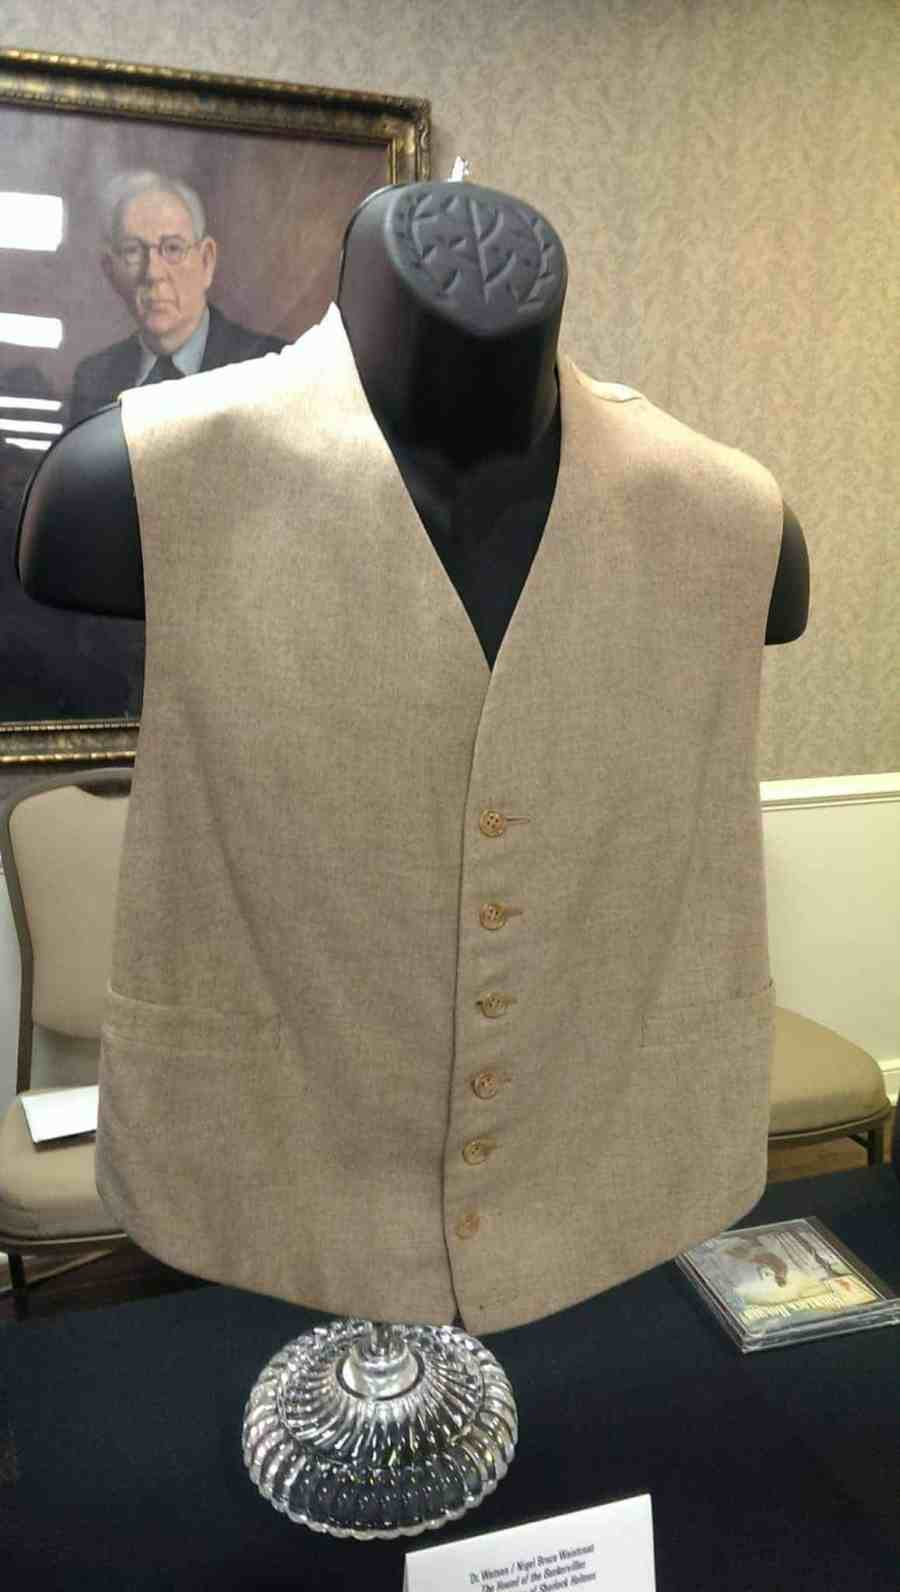 Dr. Watson waistcoat from THE HOUSE OF THE BASKERVILLES and THE ADVENTURES OF SHERLOCK HOLMES, 1939. Cream-colored vest with beige back.